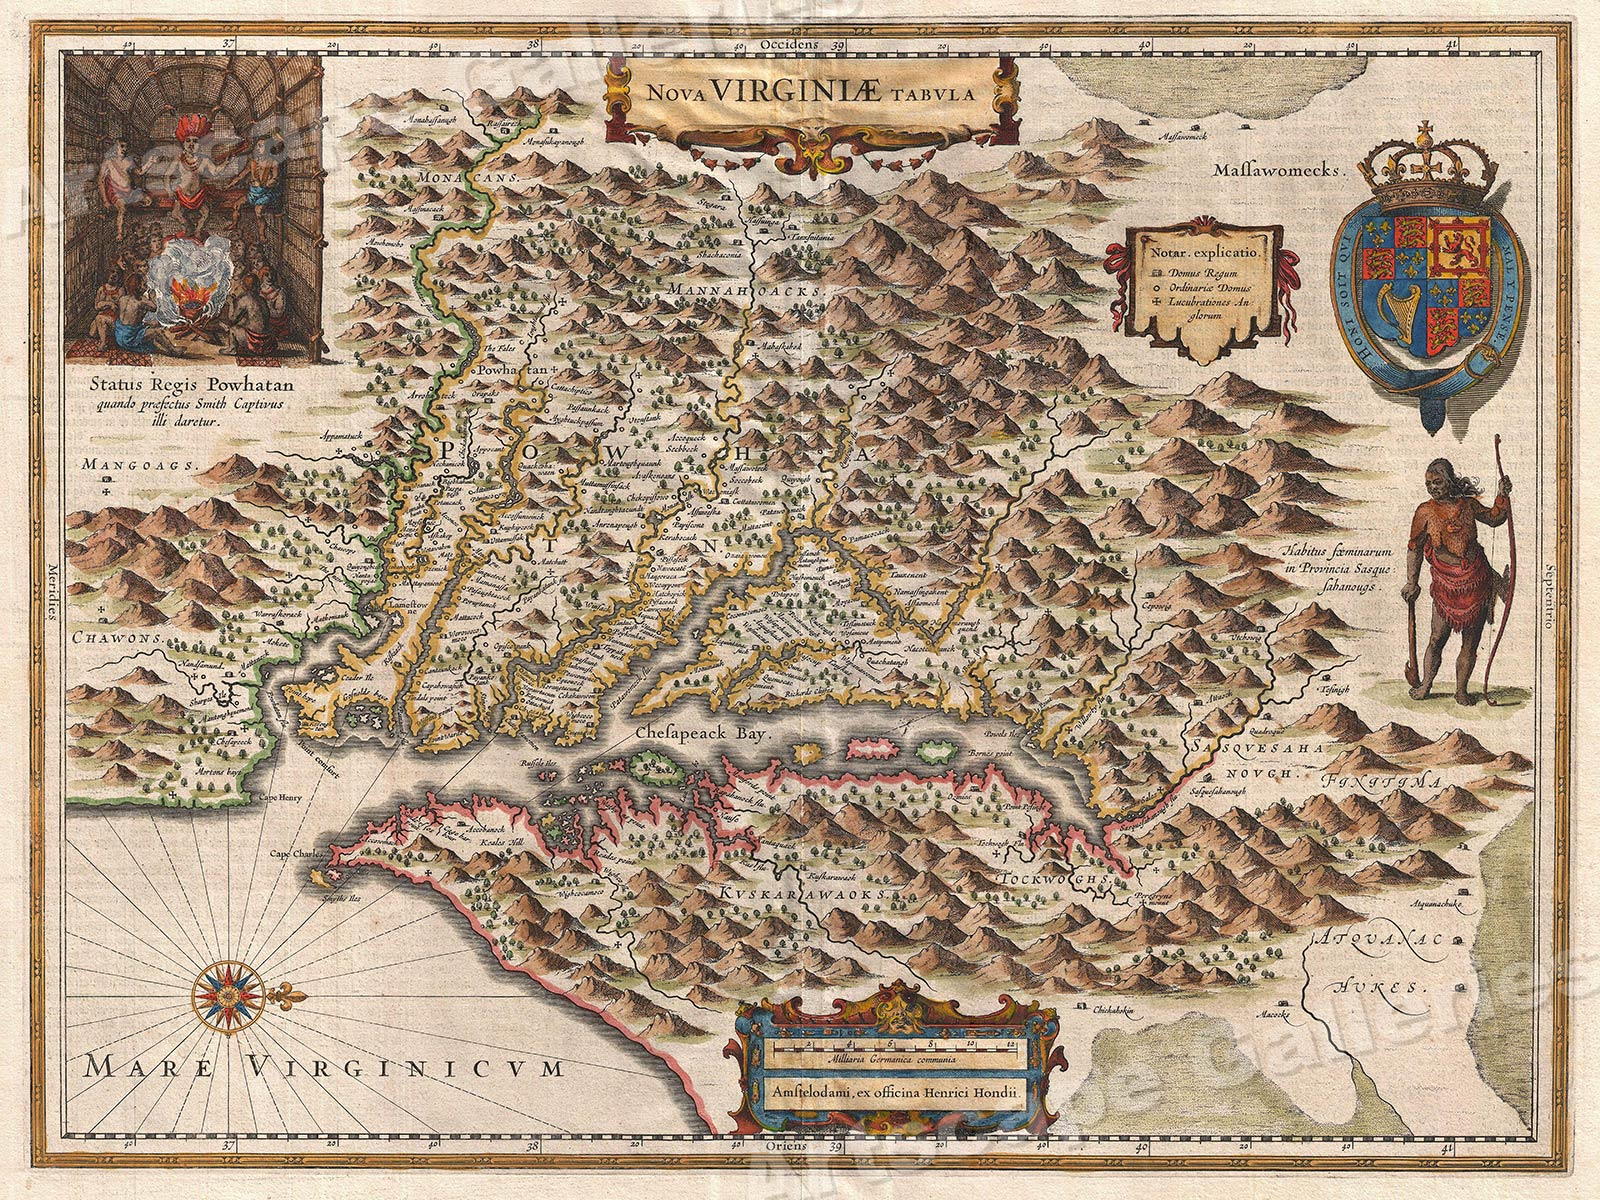 Details about 1630 Virginia Colonial Jamestown Historic Vintage Style Wall  Map - 24x32